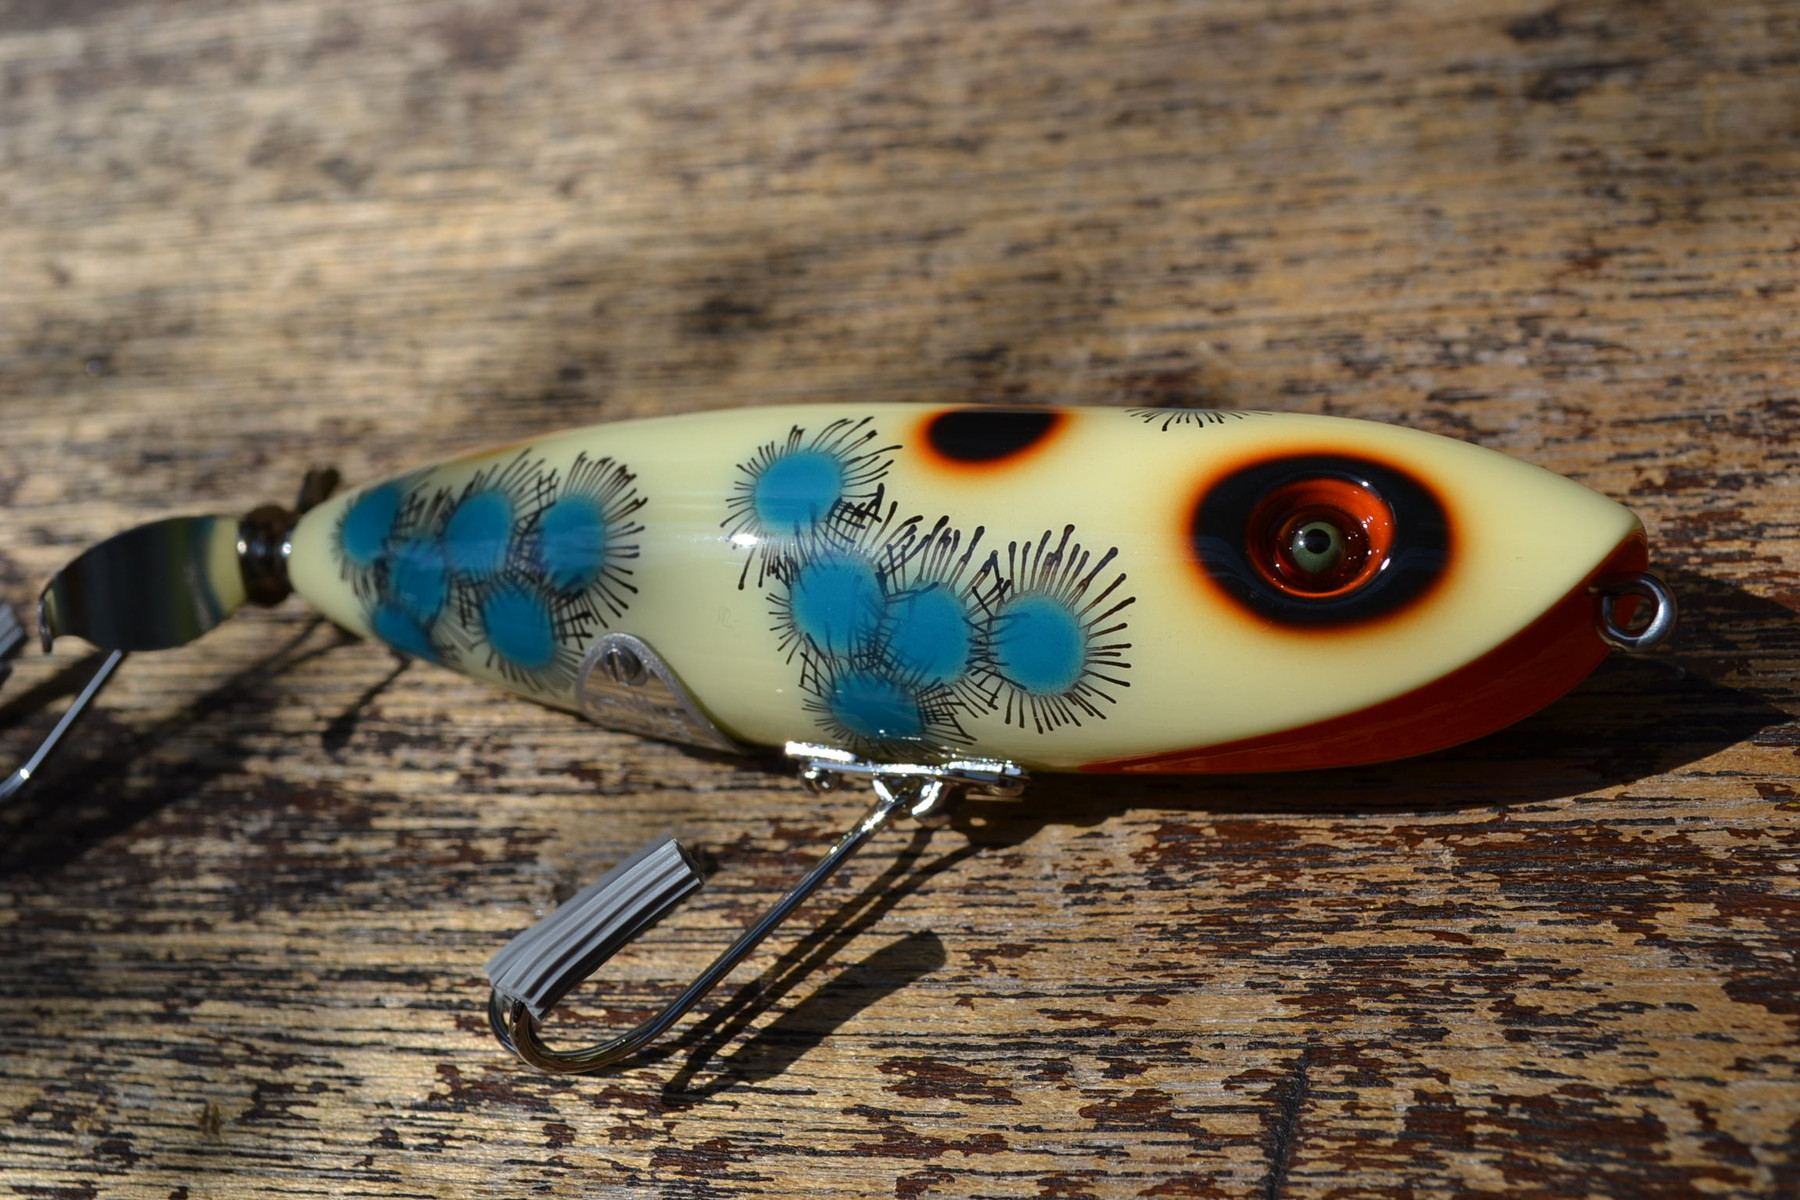 Http blog livedoor jp landscape_ archives 51925420 html lures pinterest landscaping fishing lures and vintage fishing lures